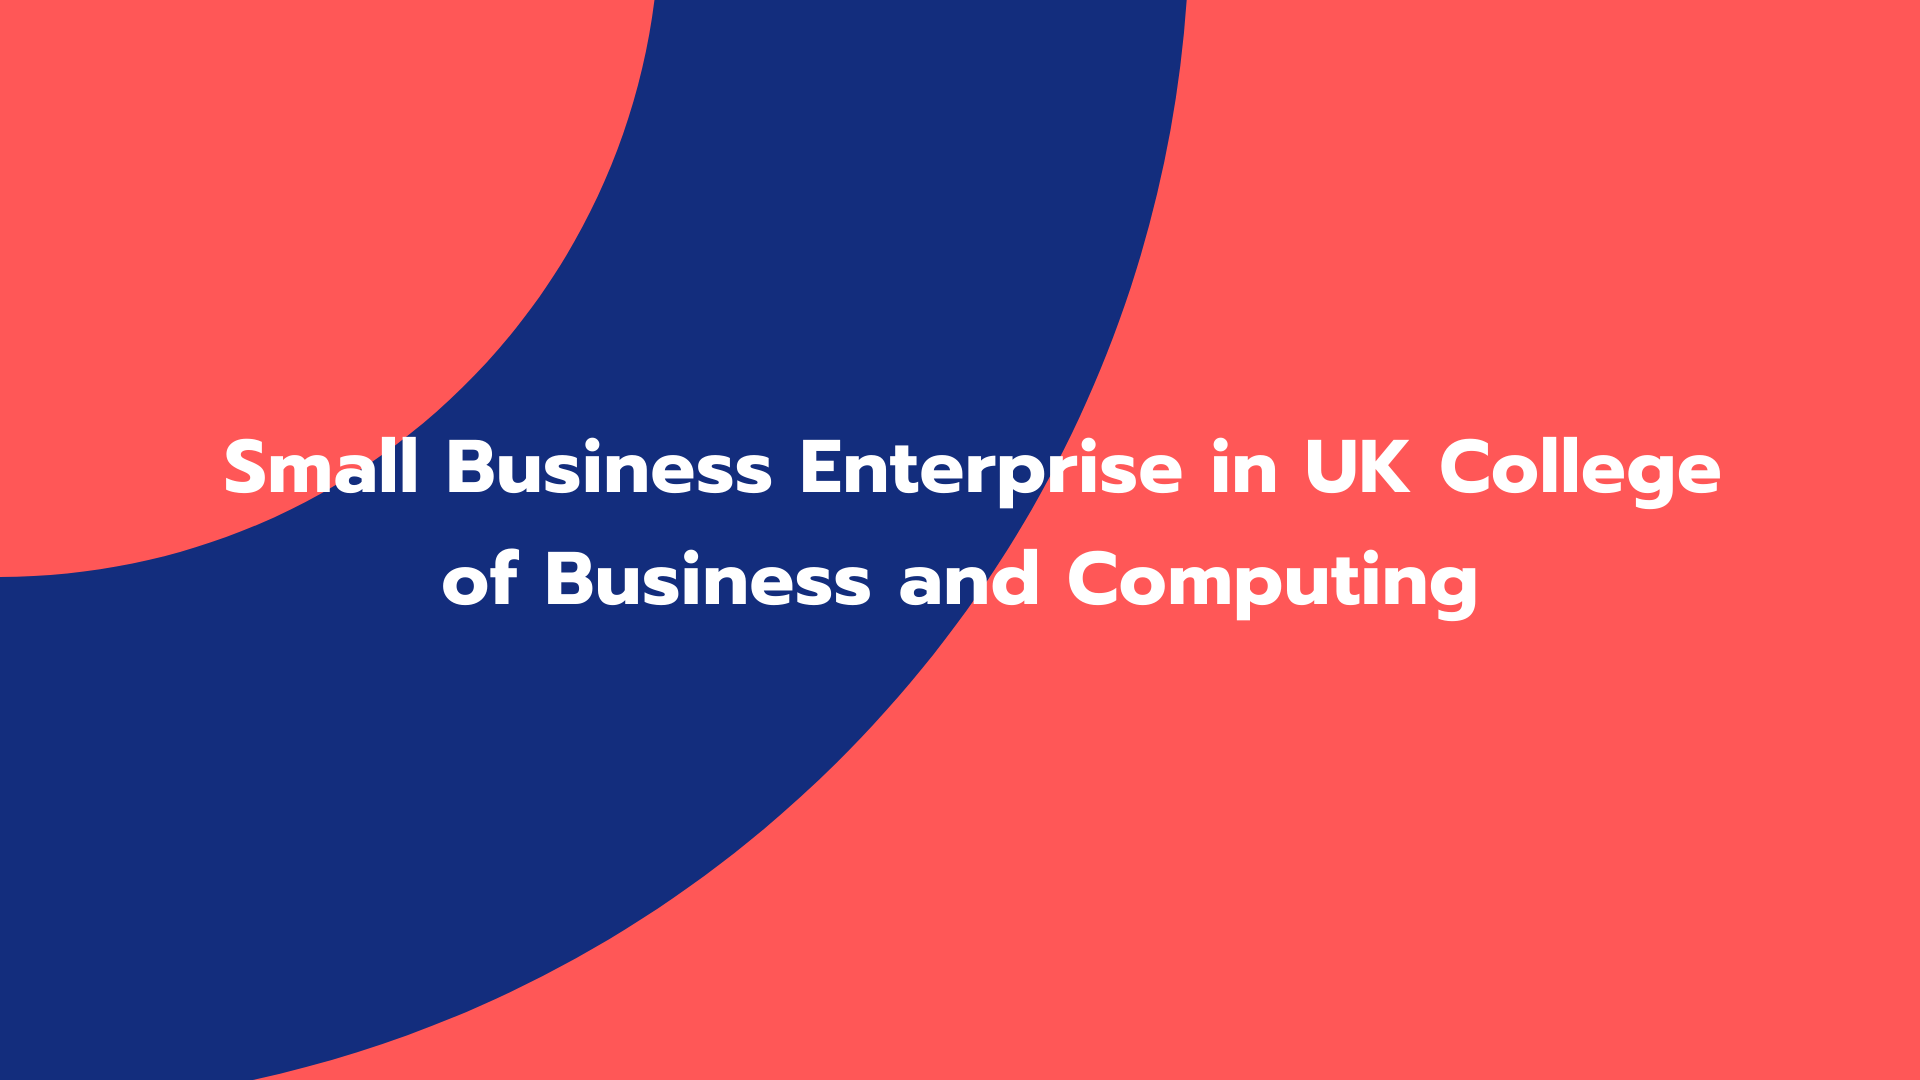 Small Business Enterprise in UK College of Business and Computing